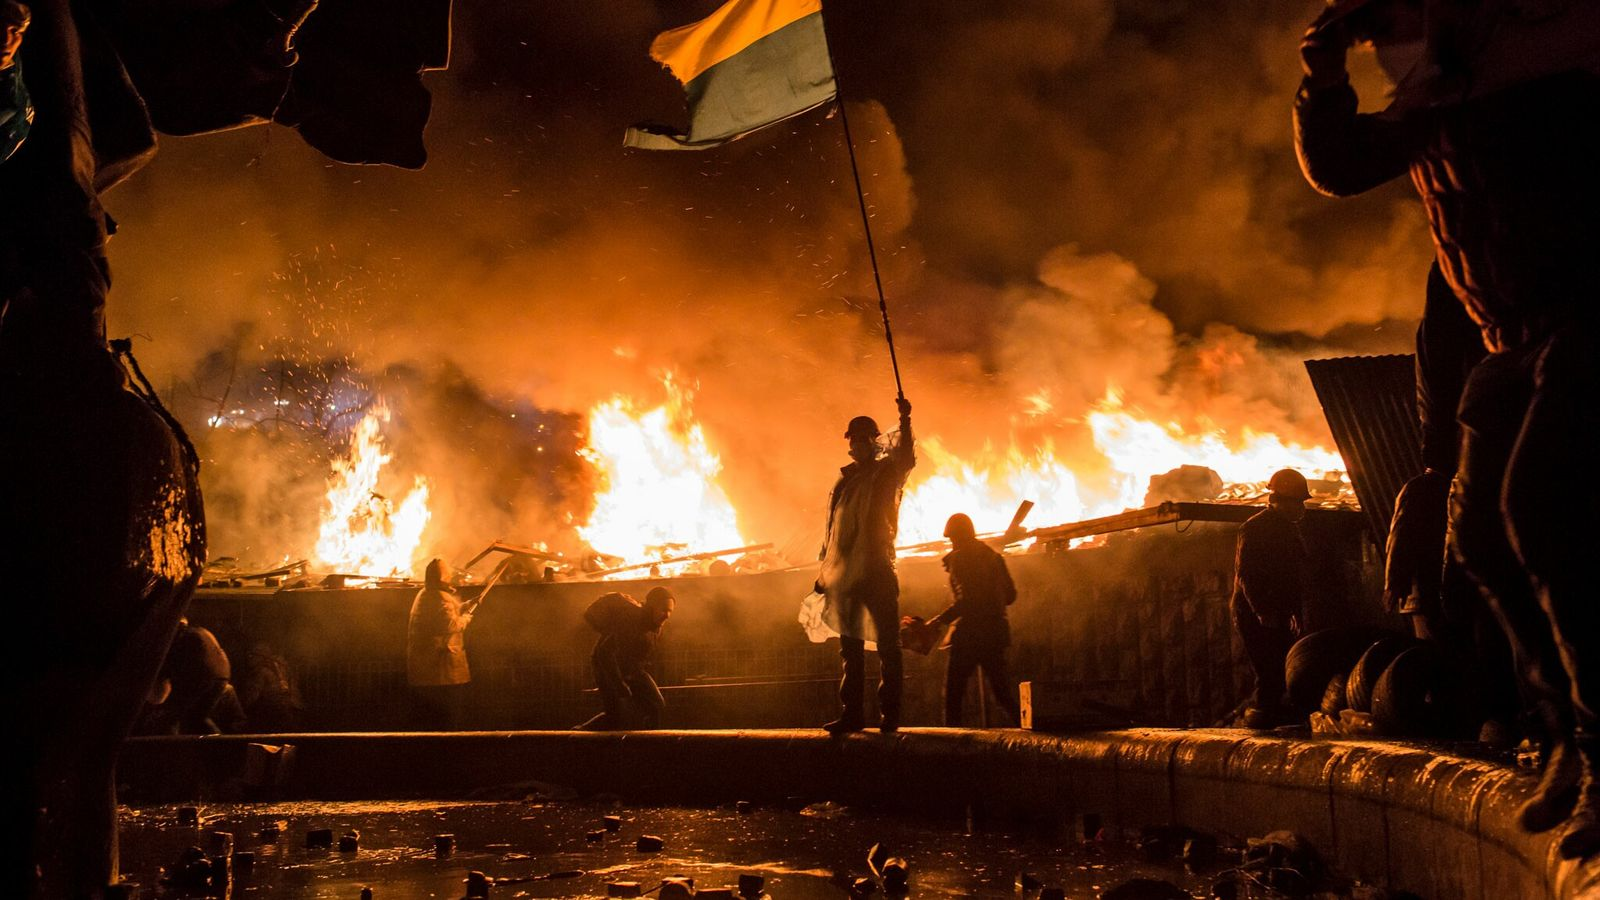 In Kyiv, Ukraine, anti-government protesters guard the perimeter of Independence Square, known as Maidan. In 2014, ...